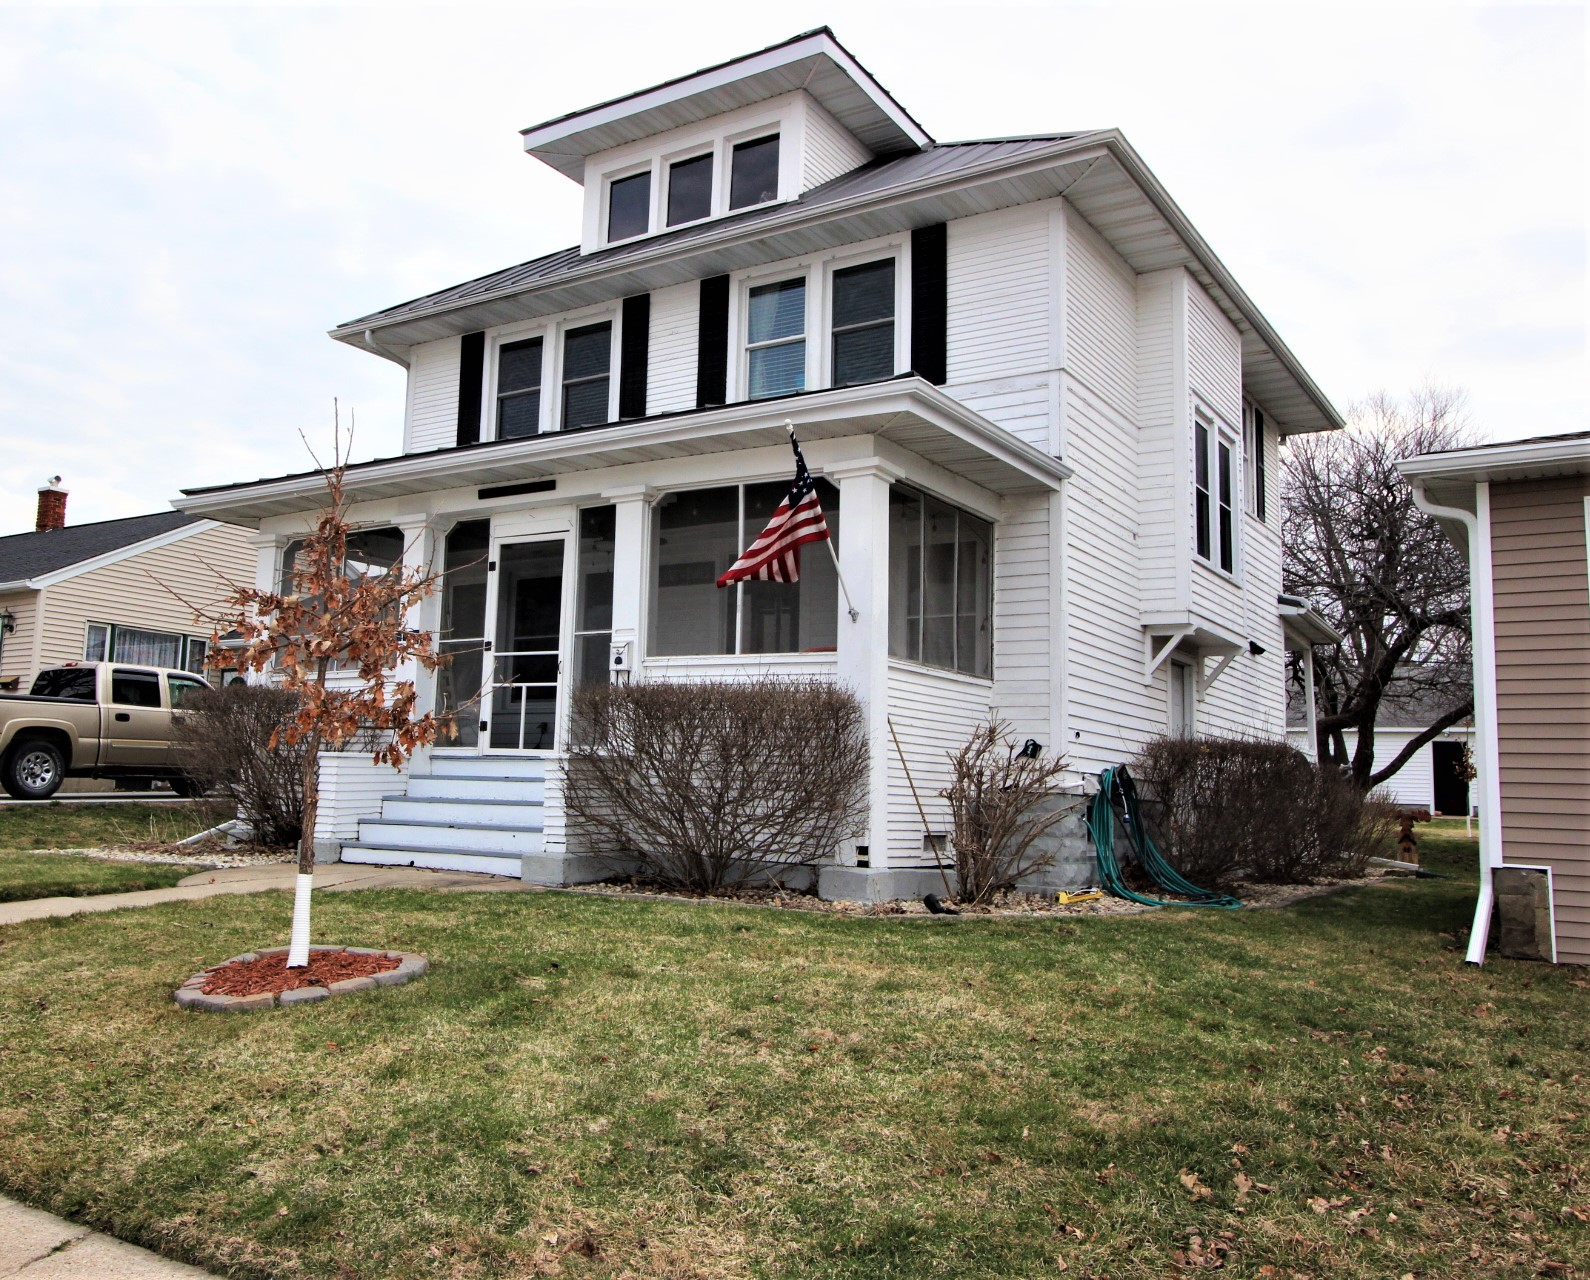 121 South Vermont St., Maquoketa, IA $124,900